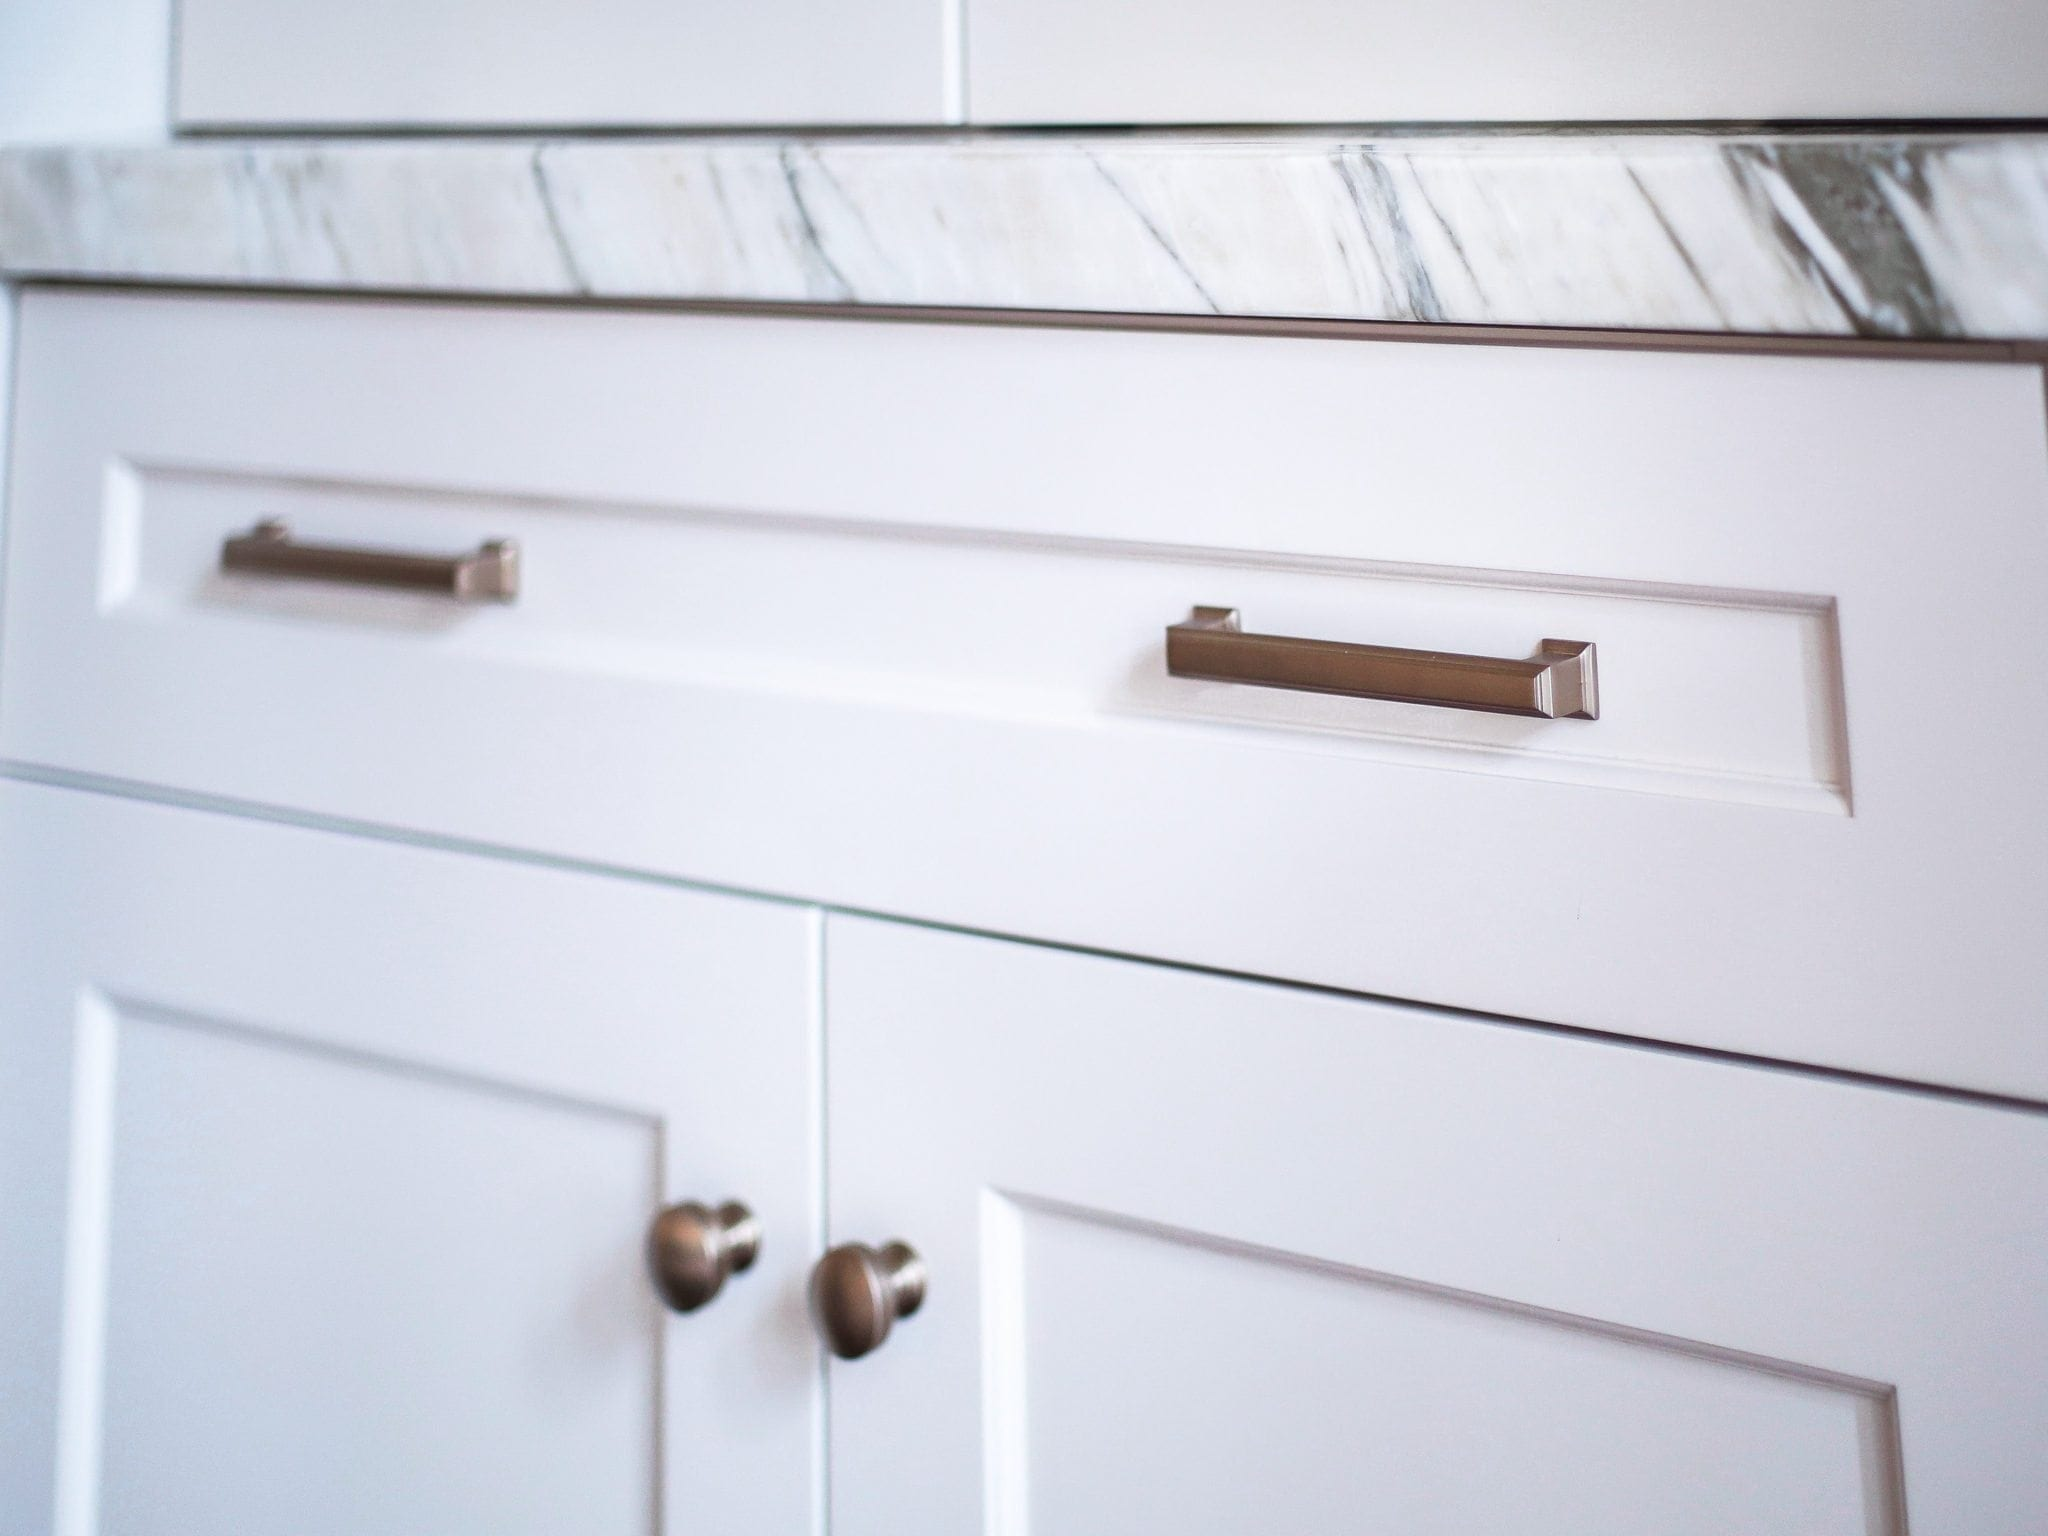 Gold hardware on white cabinets.